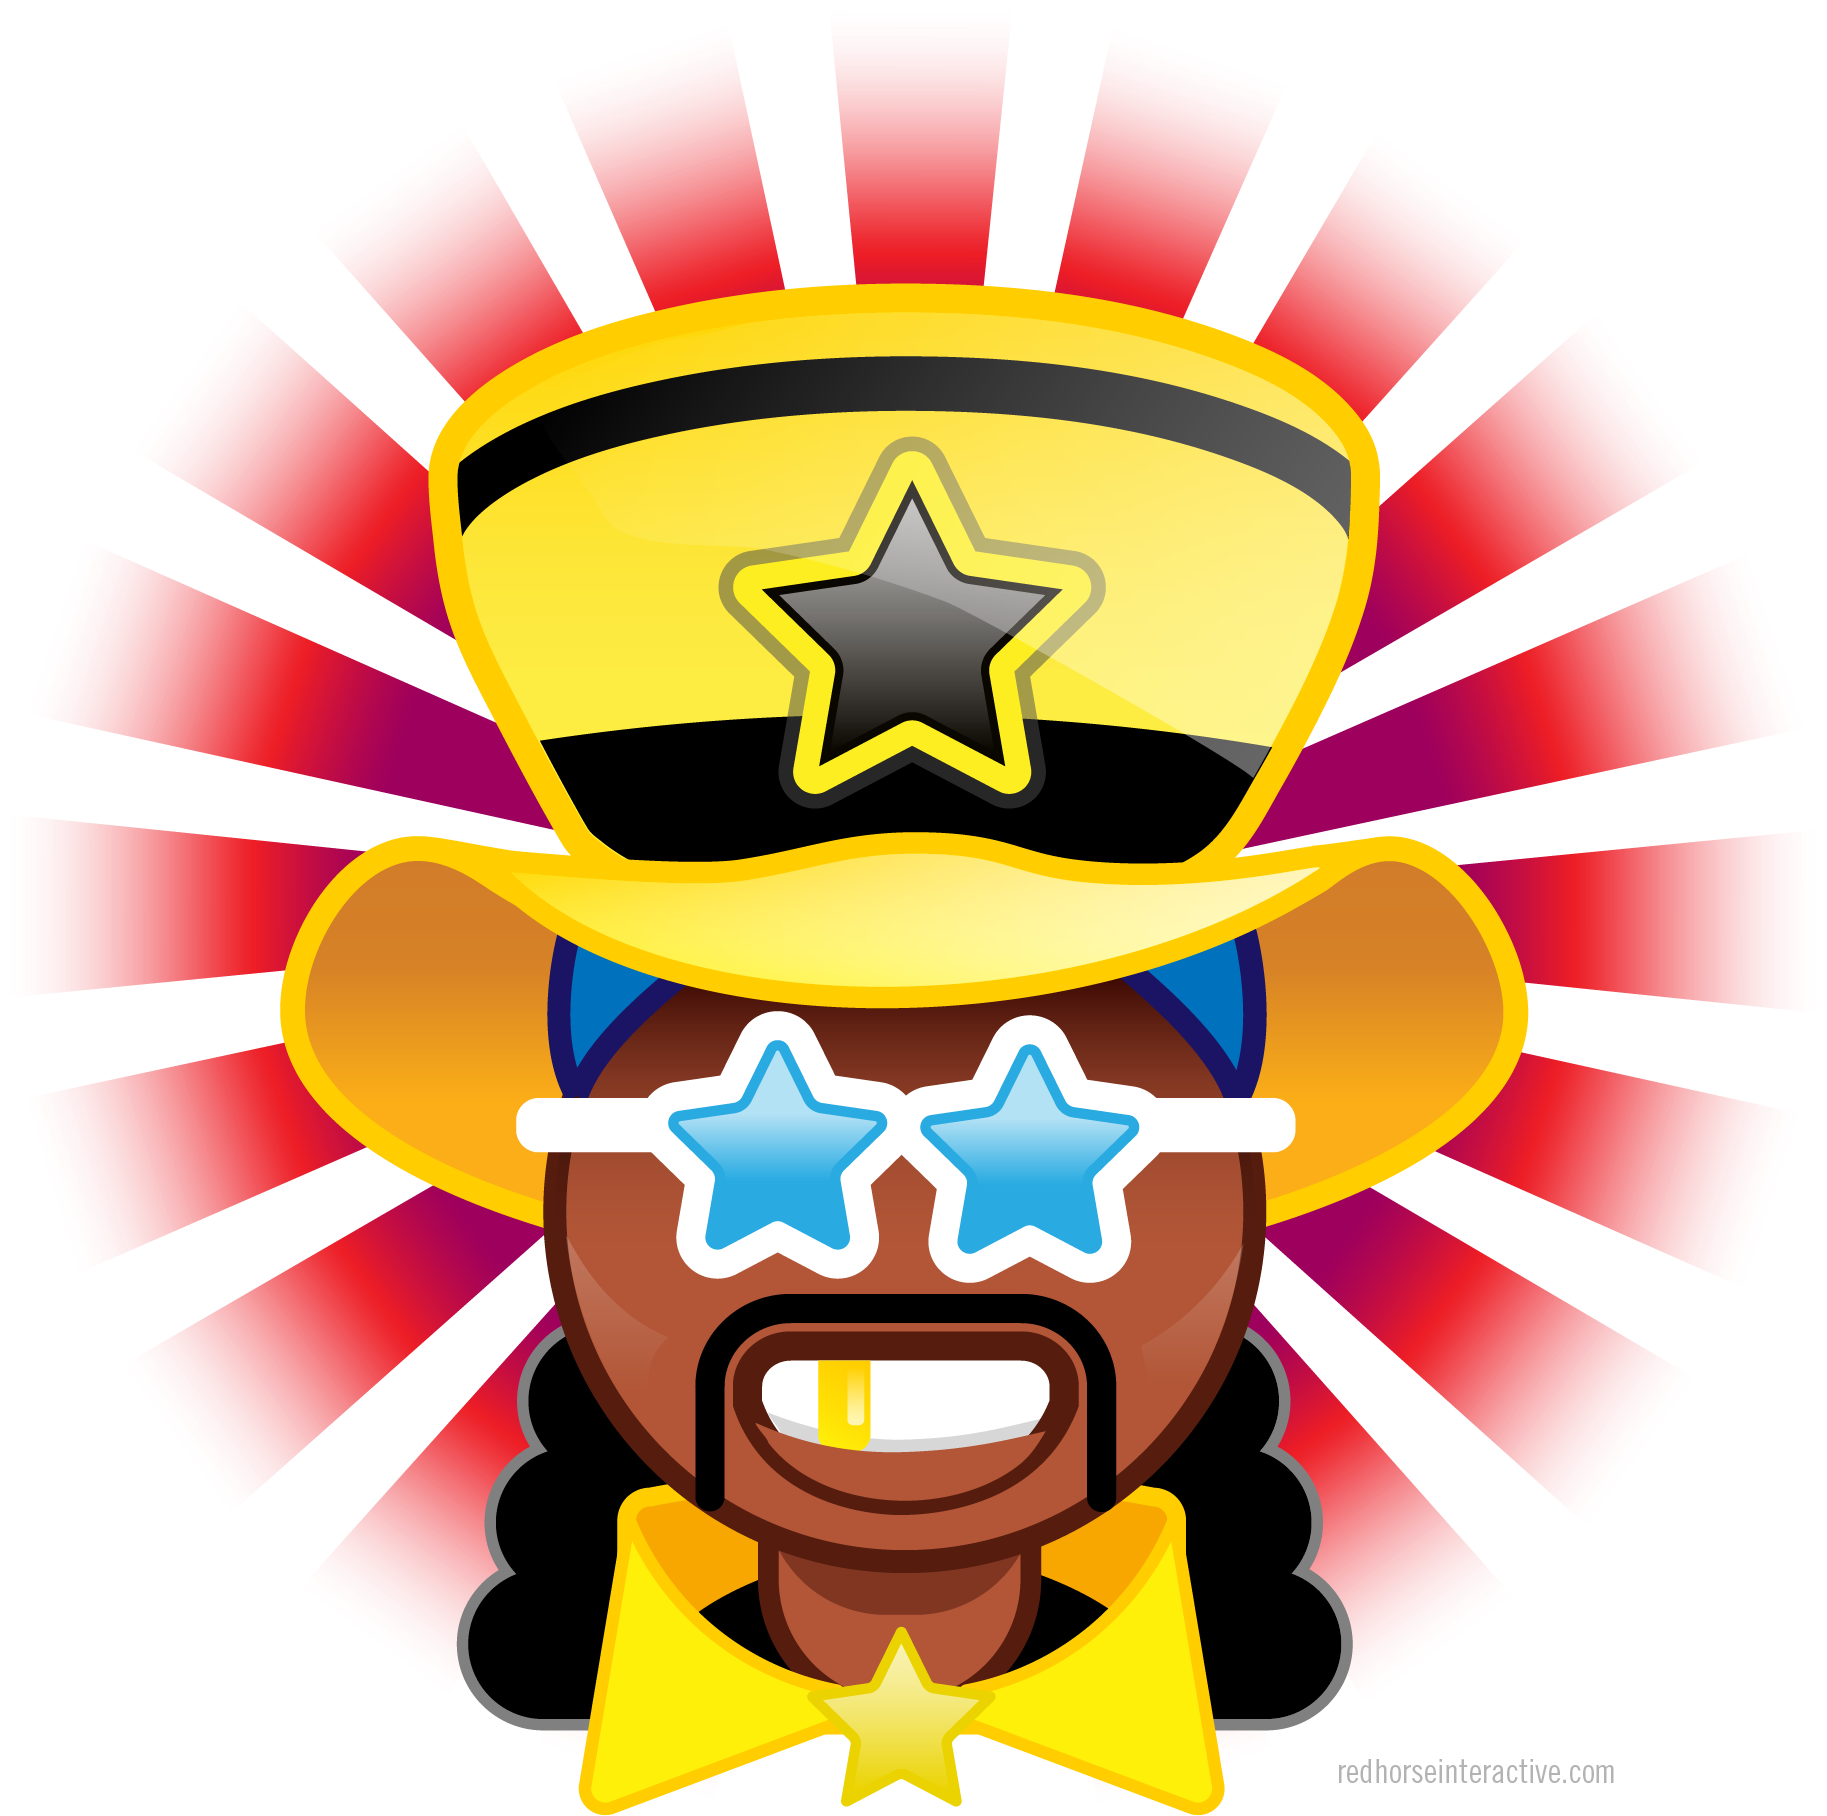 Frenzied clipart vector transparent download Bootsy Collins Emoji - Illustration Clipart - Full Size Clipart ... vector transparent download